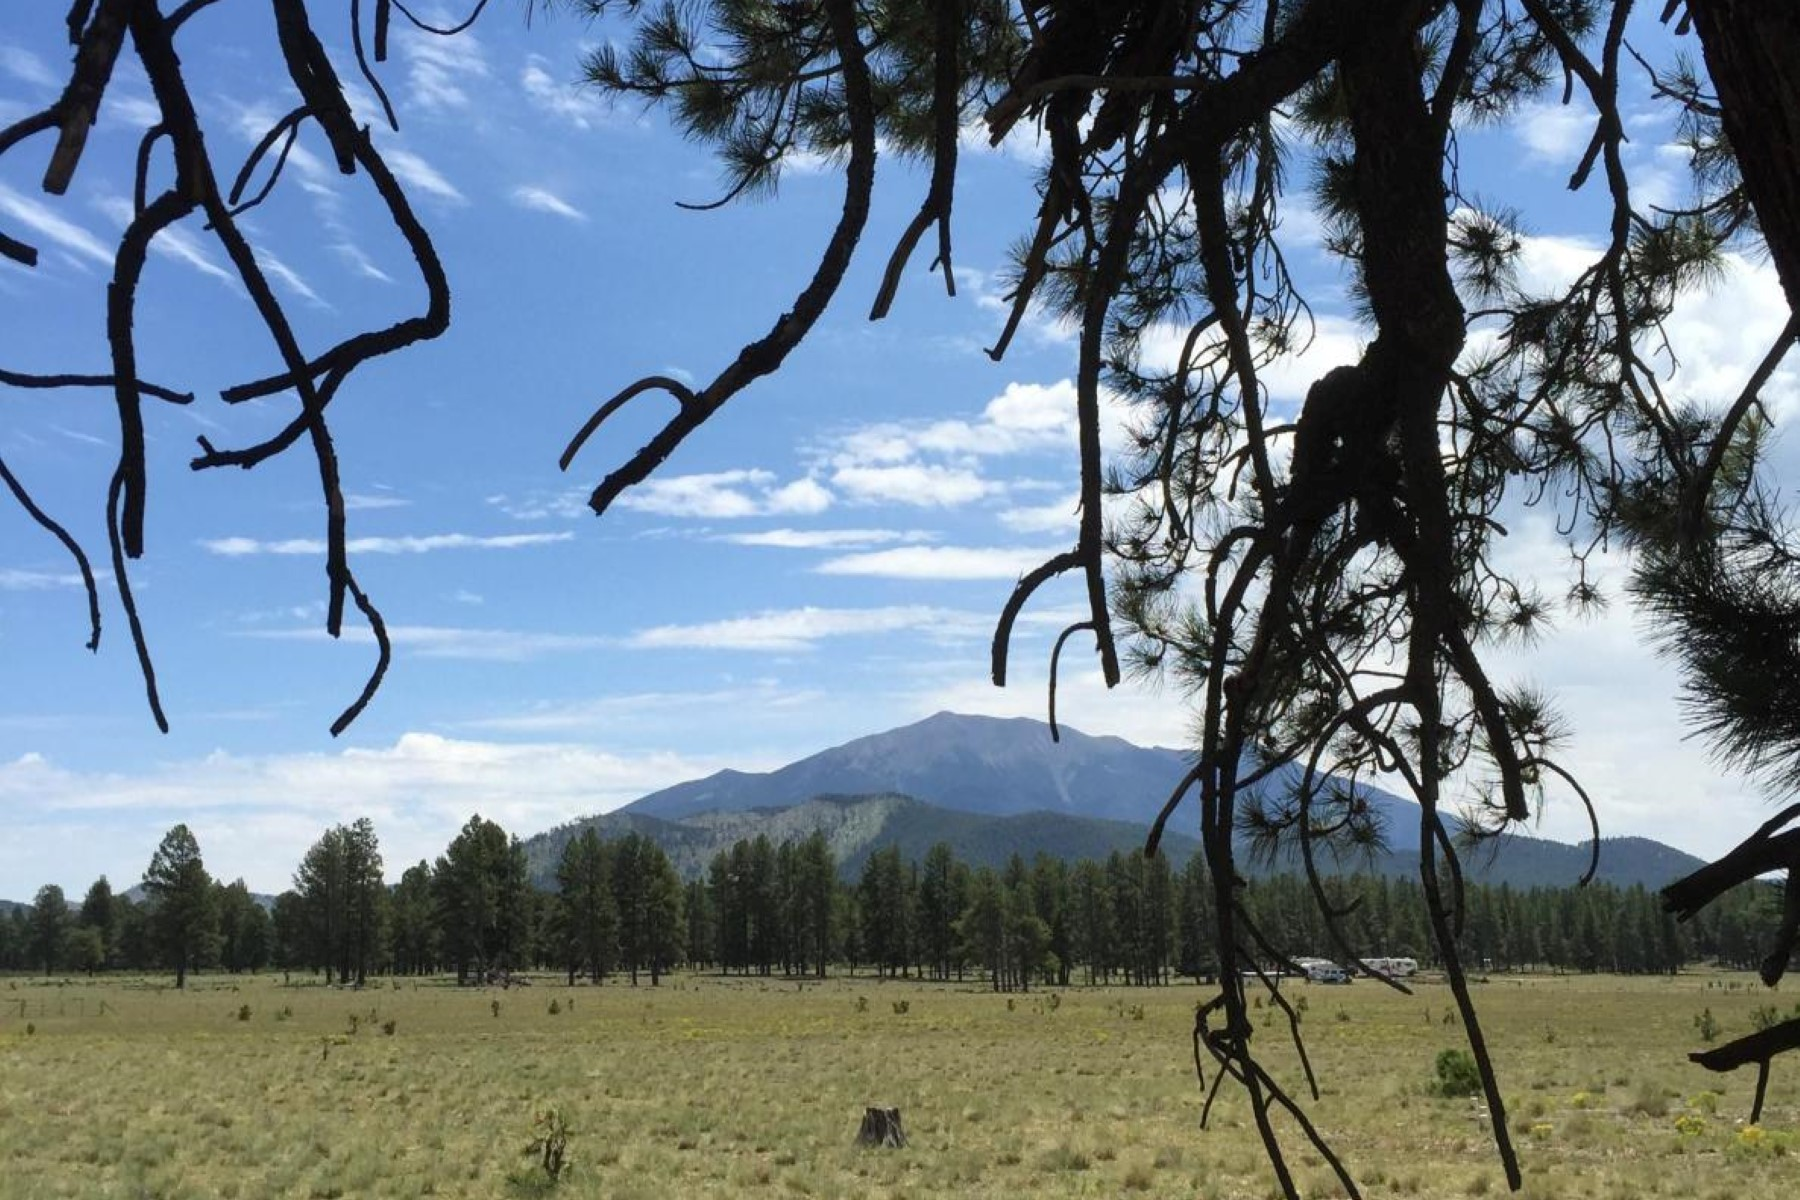 Terreno para Venda às 20 beautiful acres tucked neatly into the base of Kendricks Peak. 17928 Crowley TRL Flagstaff, Arizona 86001 Estados Unidos